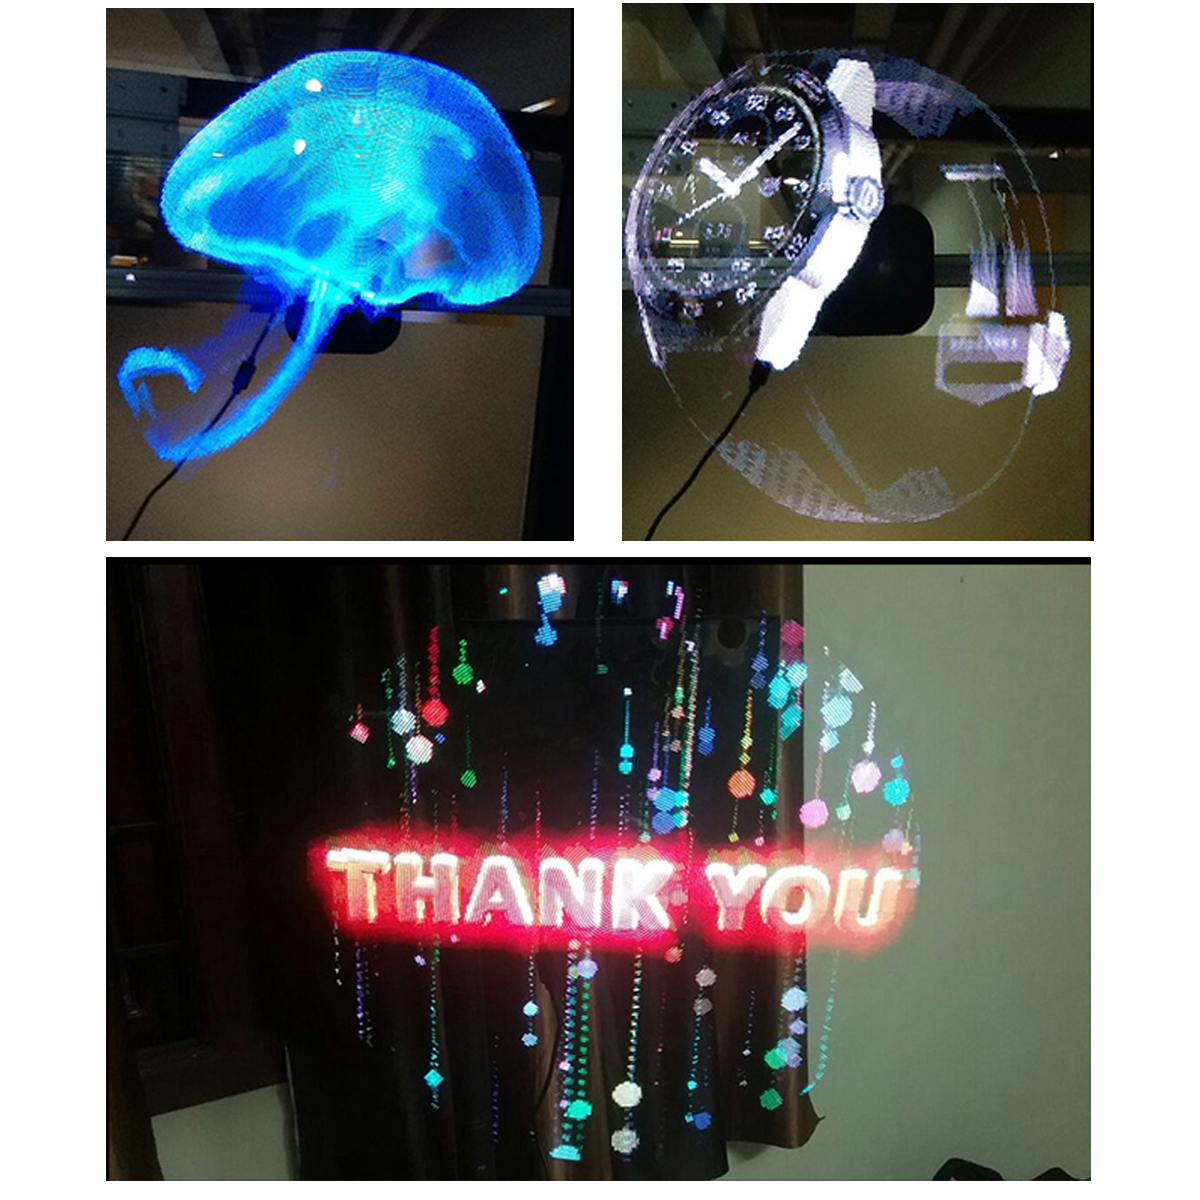 Full Naked Eye 3D Holographic Hologram Graphics LED Fan Advertising Display